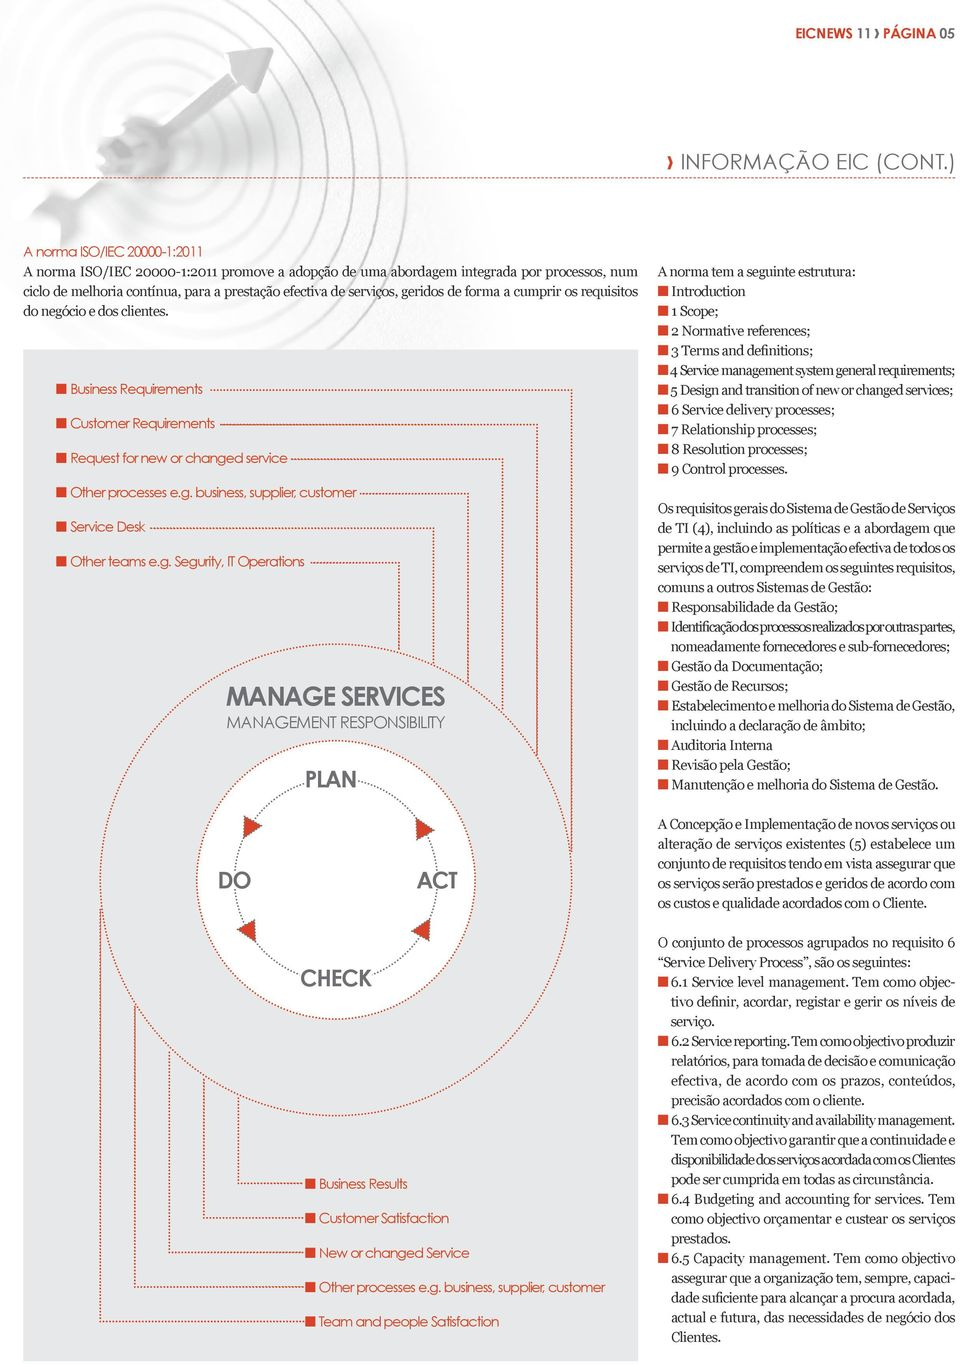 de forma a cumprir os requisitos do negócio e dos clientes. n Business Requirements n Customer Requirements n Request for new or changed service n Other processes e.g. business, supplier, customer n Service Desk n Other teams e.